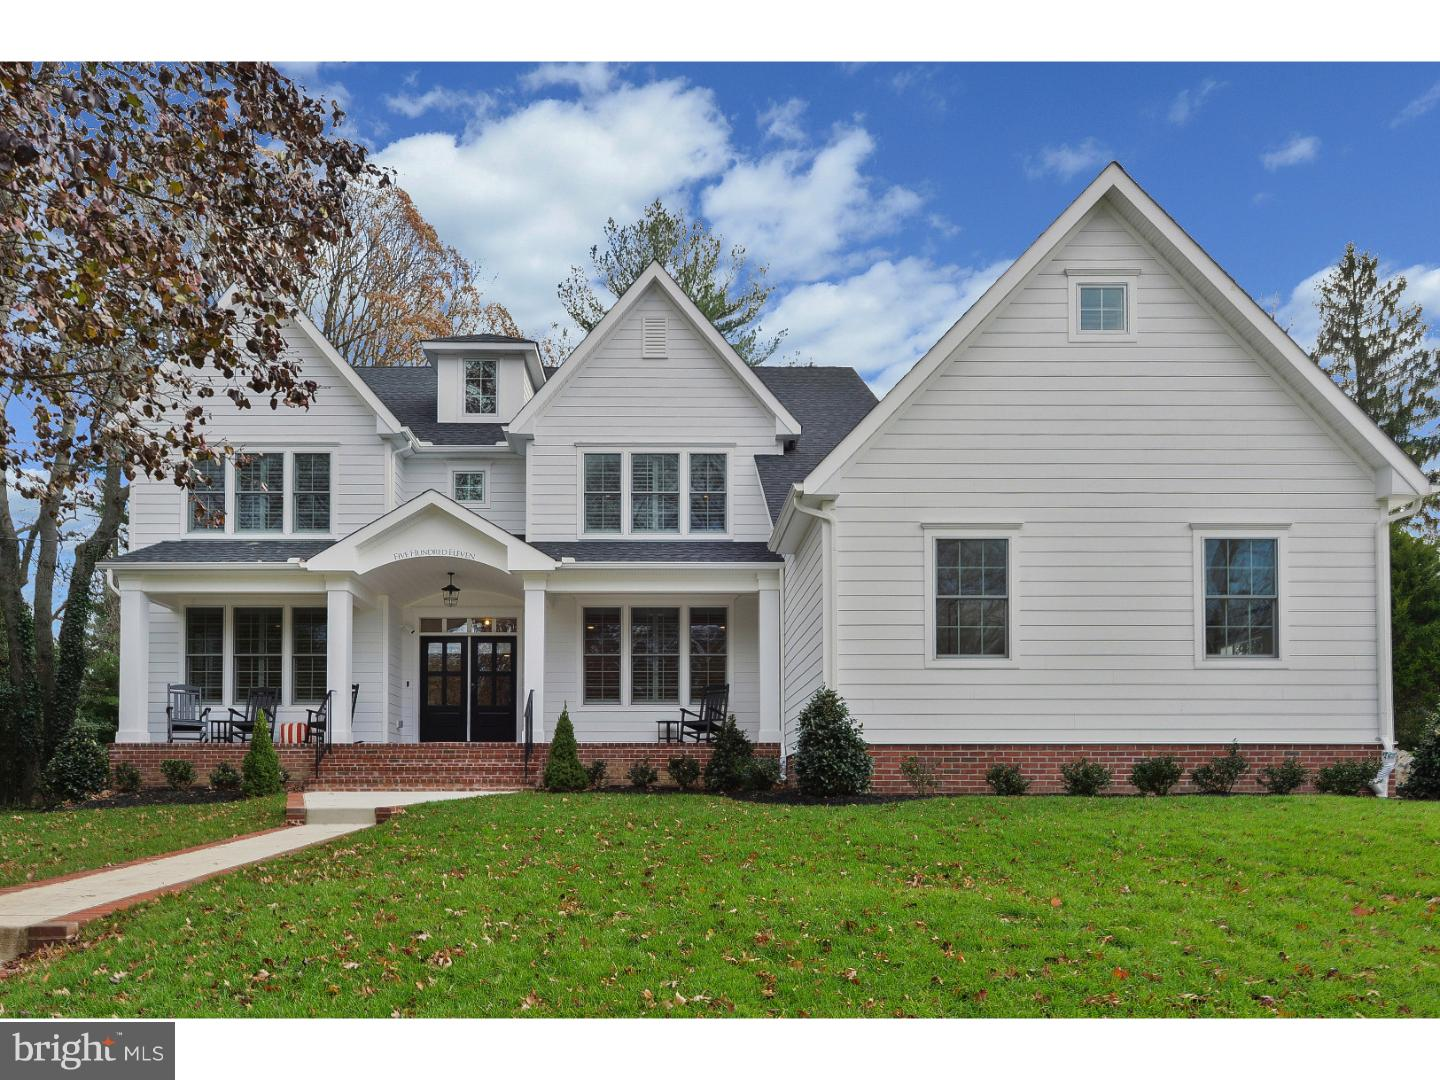 Single Family Home for Sale at 511 WESTMINSTER Avenue Haddonfield, New Jersey 08033 United States